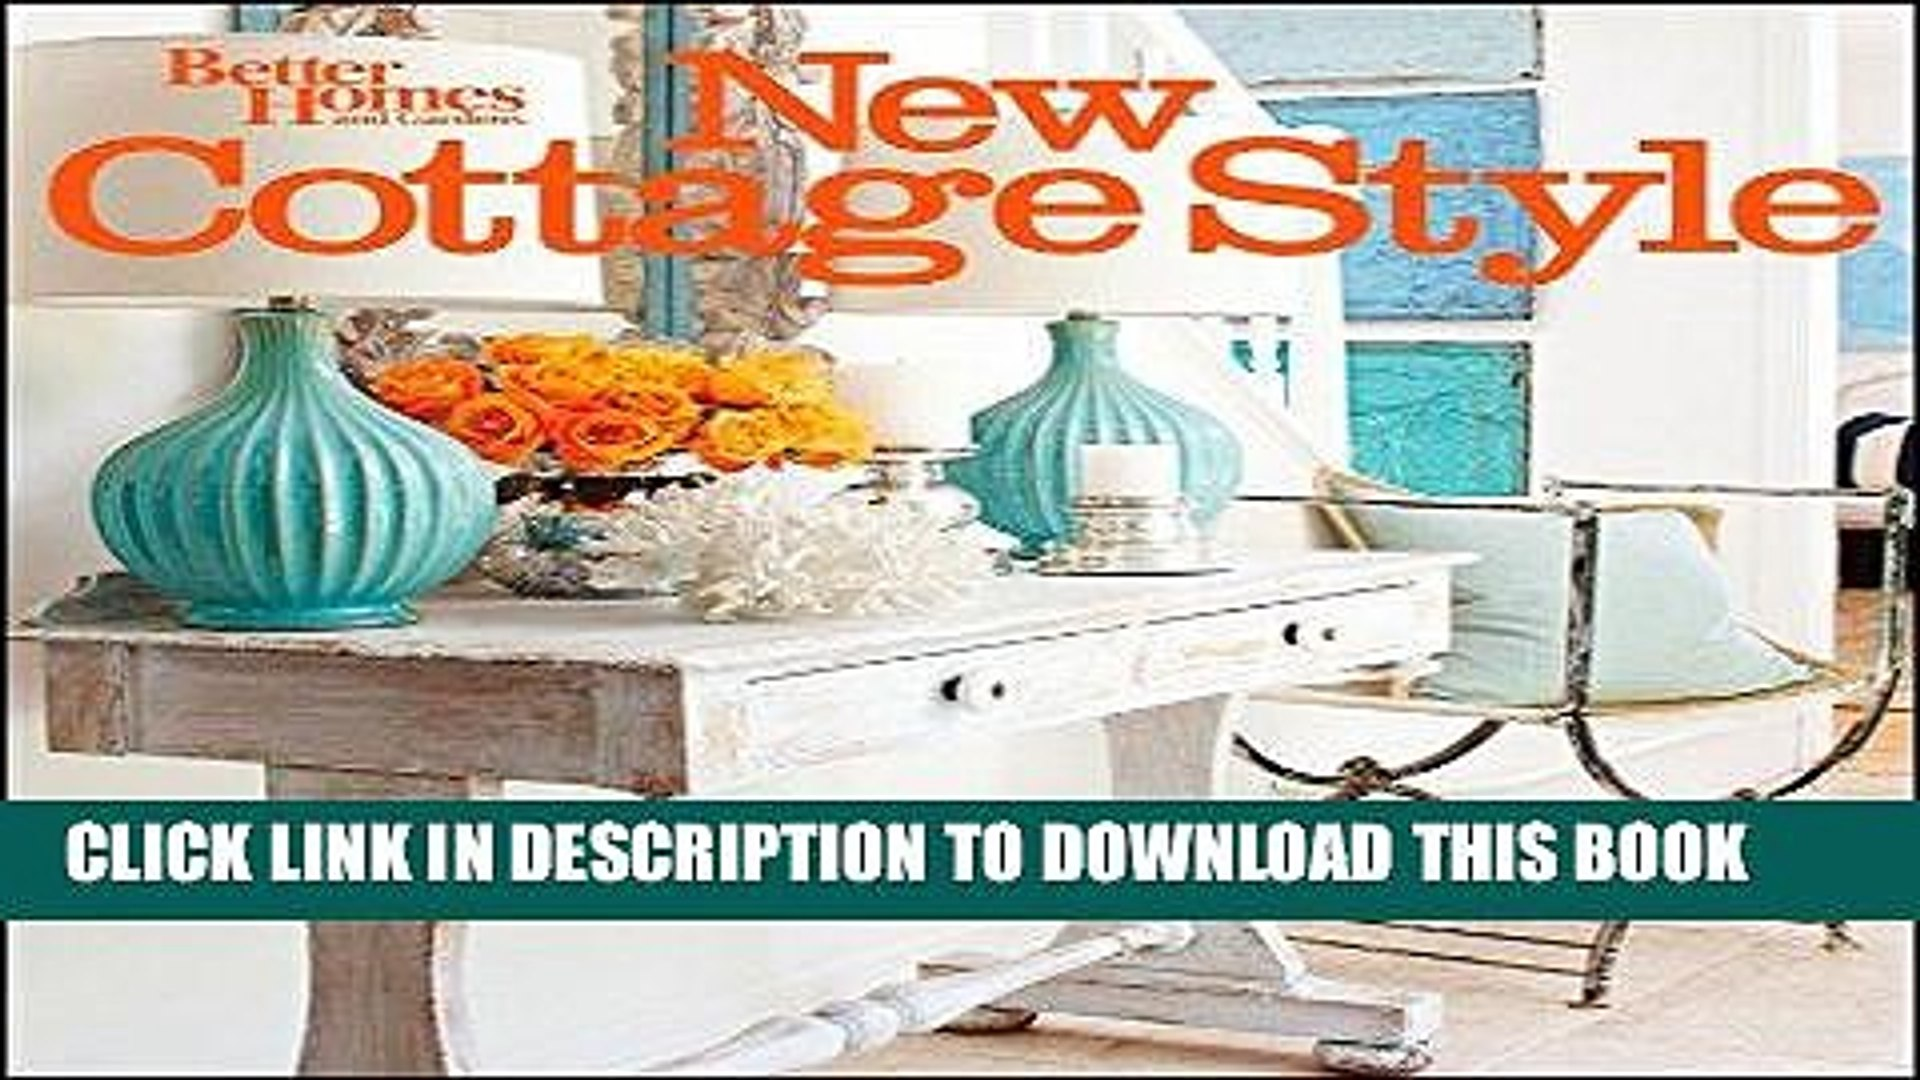 Best Seller New Cottage Style, 2nd Edition (Better Homes and Gardens) (Better Homes and Gardens